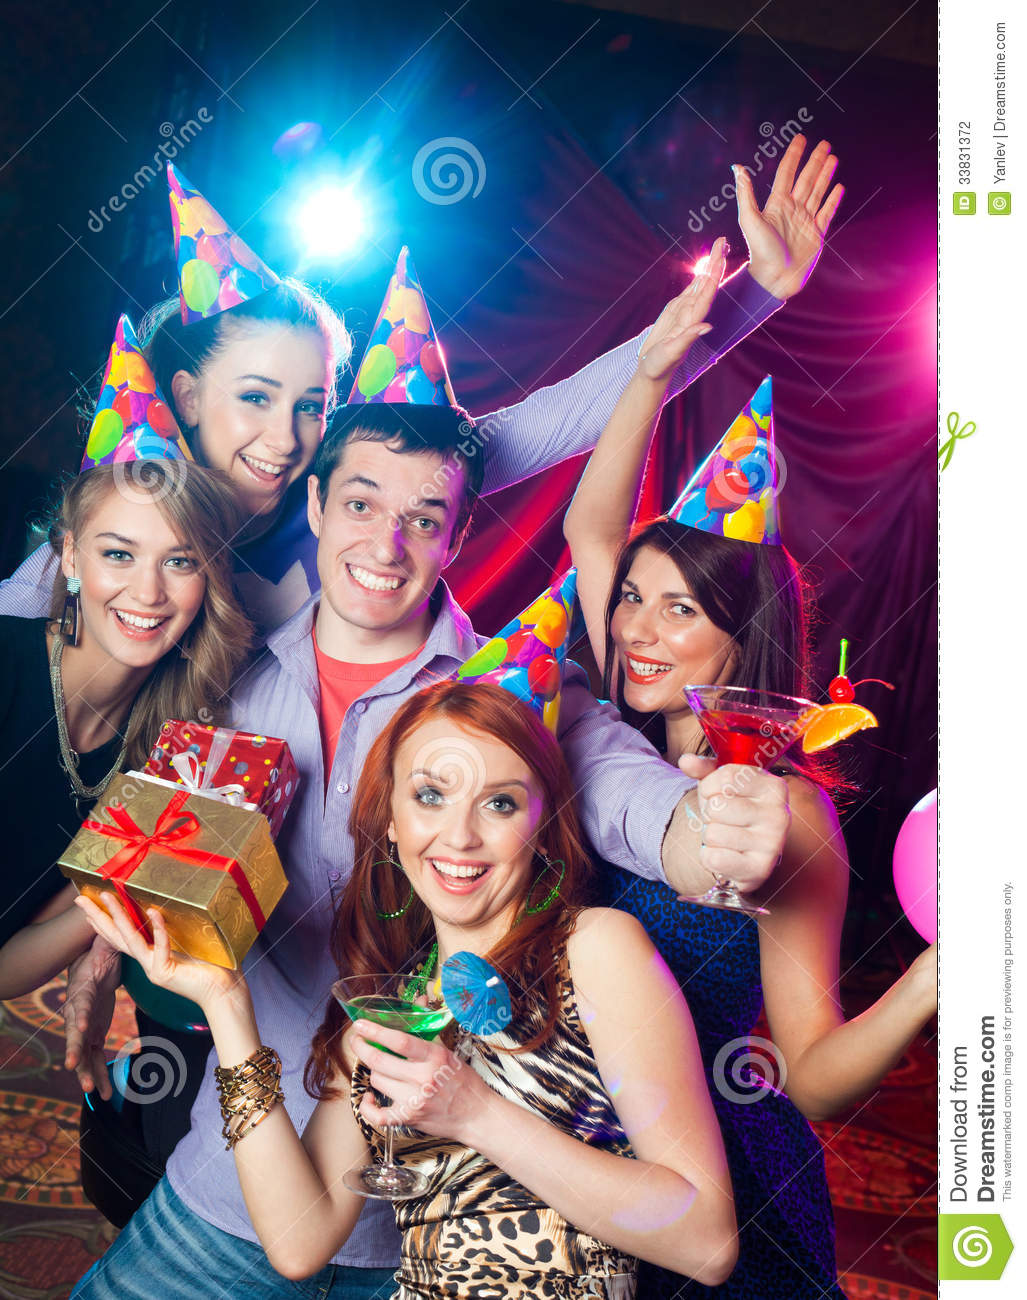 Birthday Party At Nightclub Stock Photo Image Of Club Event 33831372